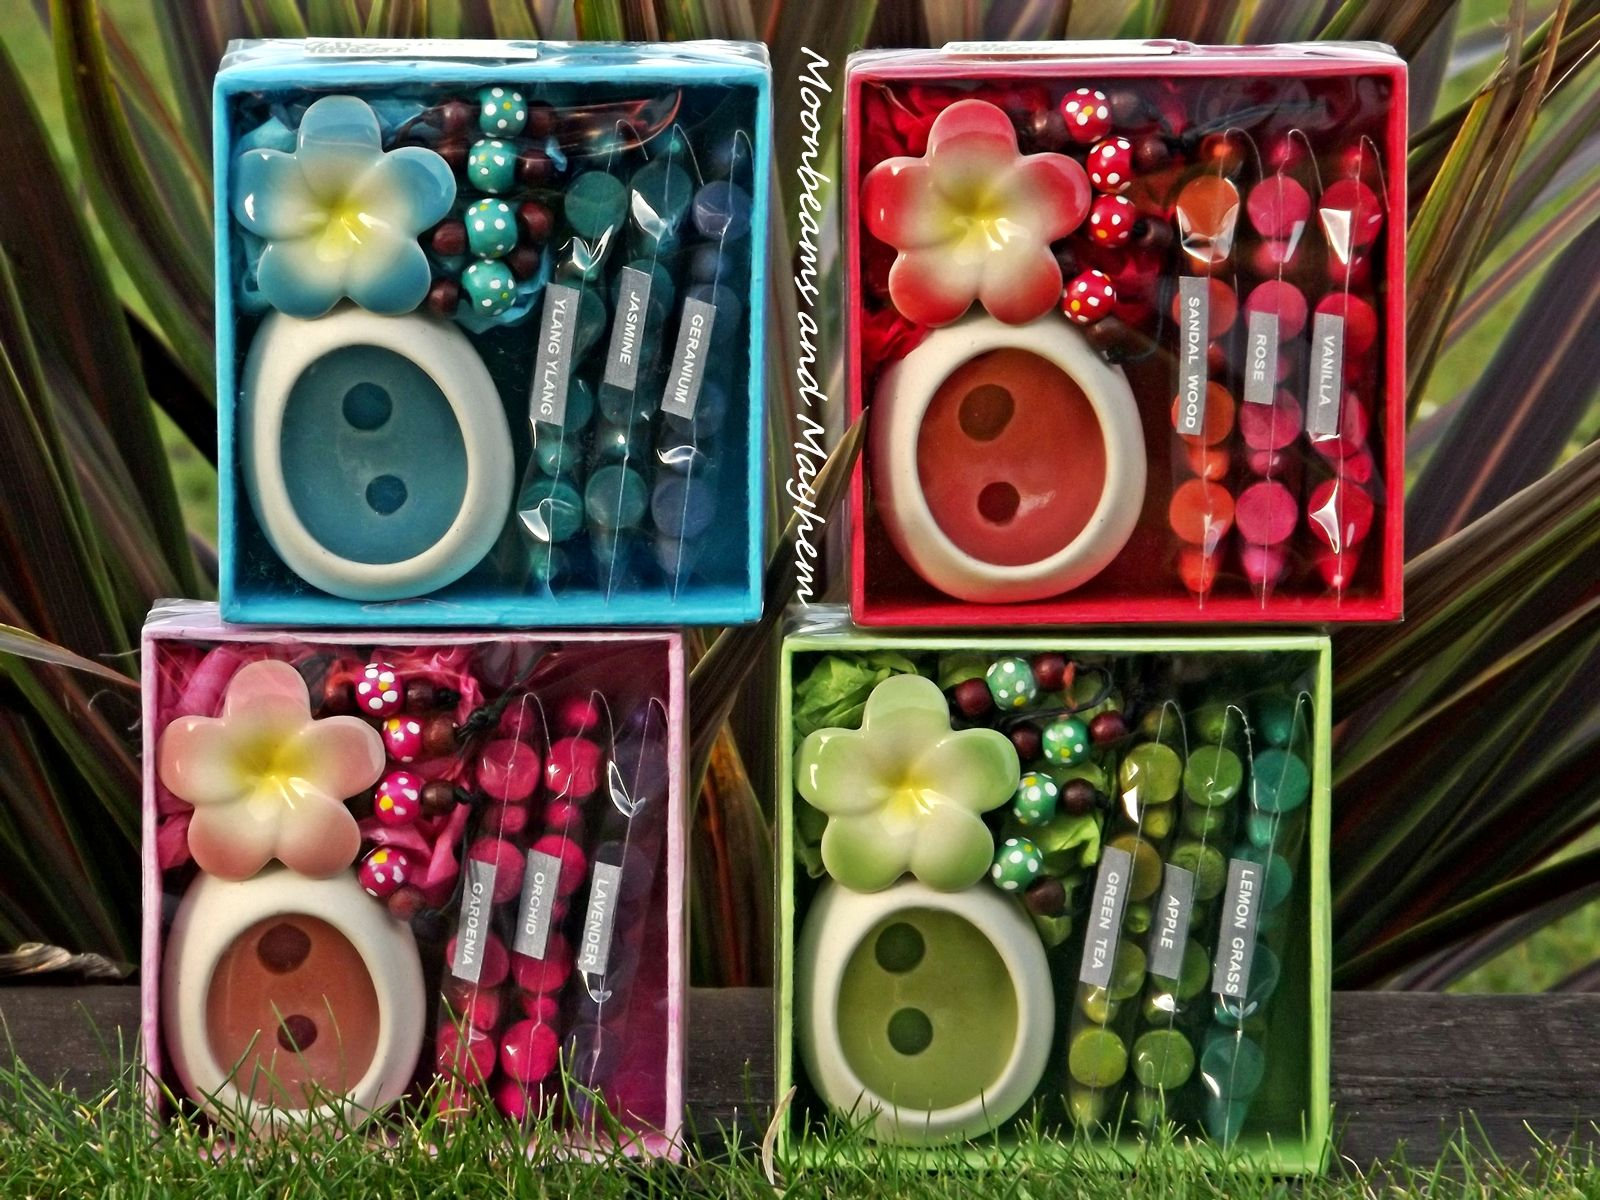 ♥ ~ Delicious Hanging Flower Insence Burners Available from Moonbeams and Mayhems Eclectic Store ~ £10 ~ http://stores.ebay.co.uk/Moonbeams-Bazaar?_rdc=1 ~ Join Moonbeams Colourful World here : https://www.facebook.com/MoonbeamsandMayhem?ref=hl